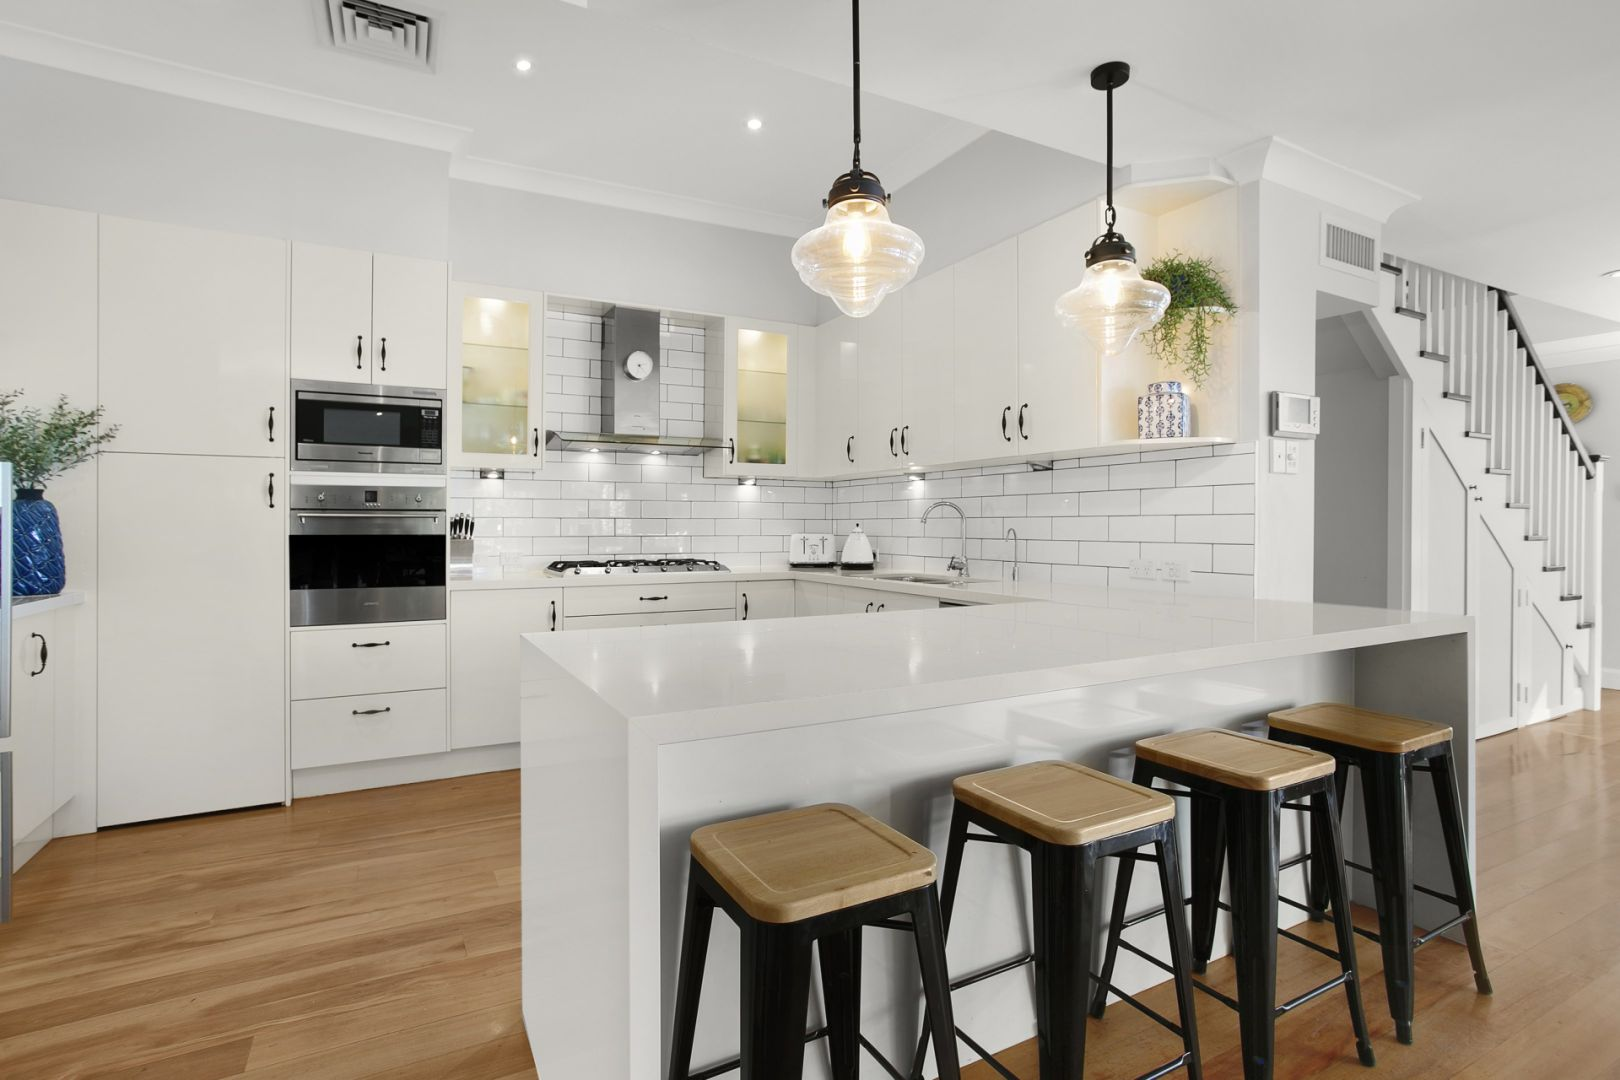 White Kitchen Cabinet with Wooden Floor and Chair